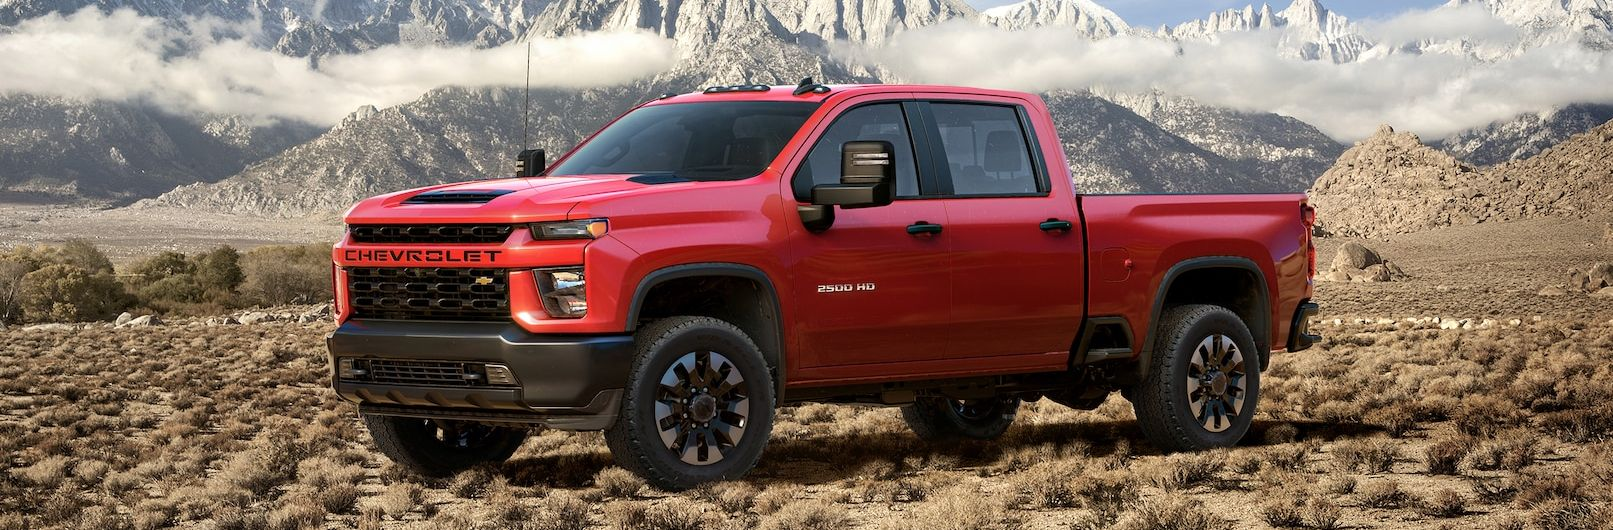 2020 Chevrolet Silverado HD Preview near North Country, CA